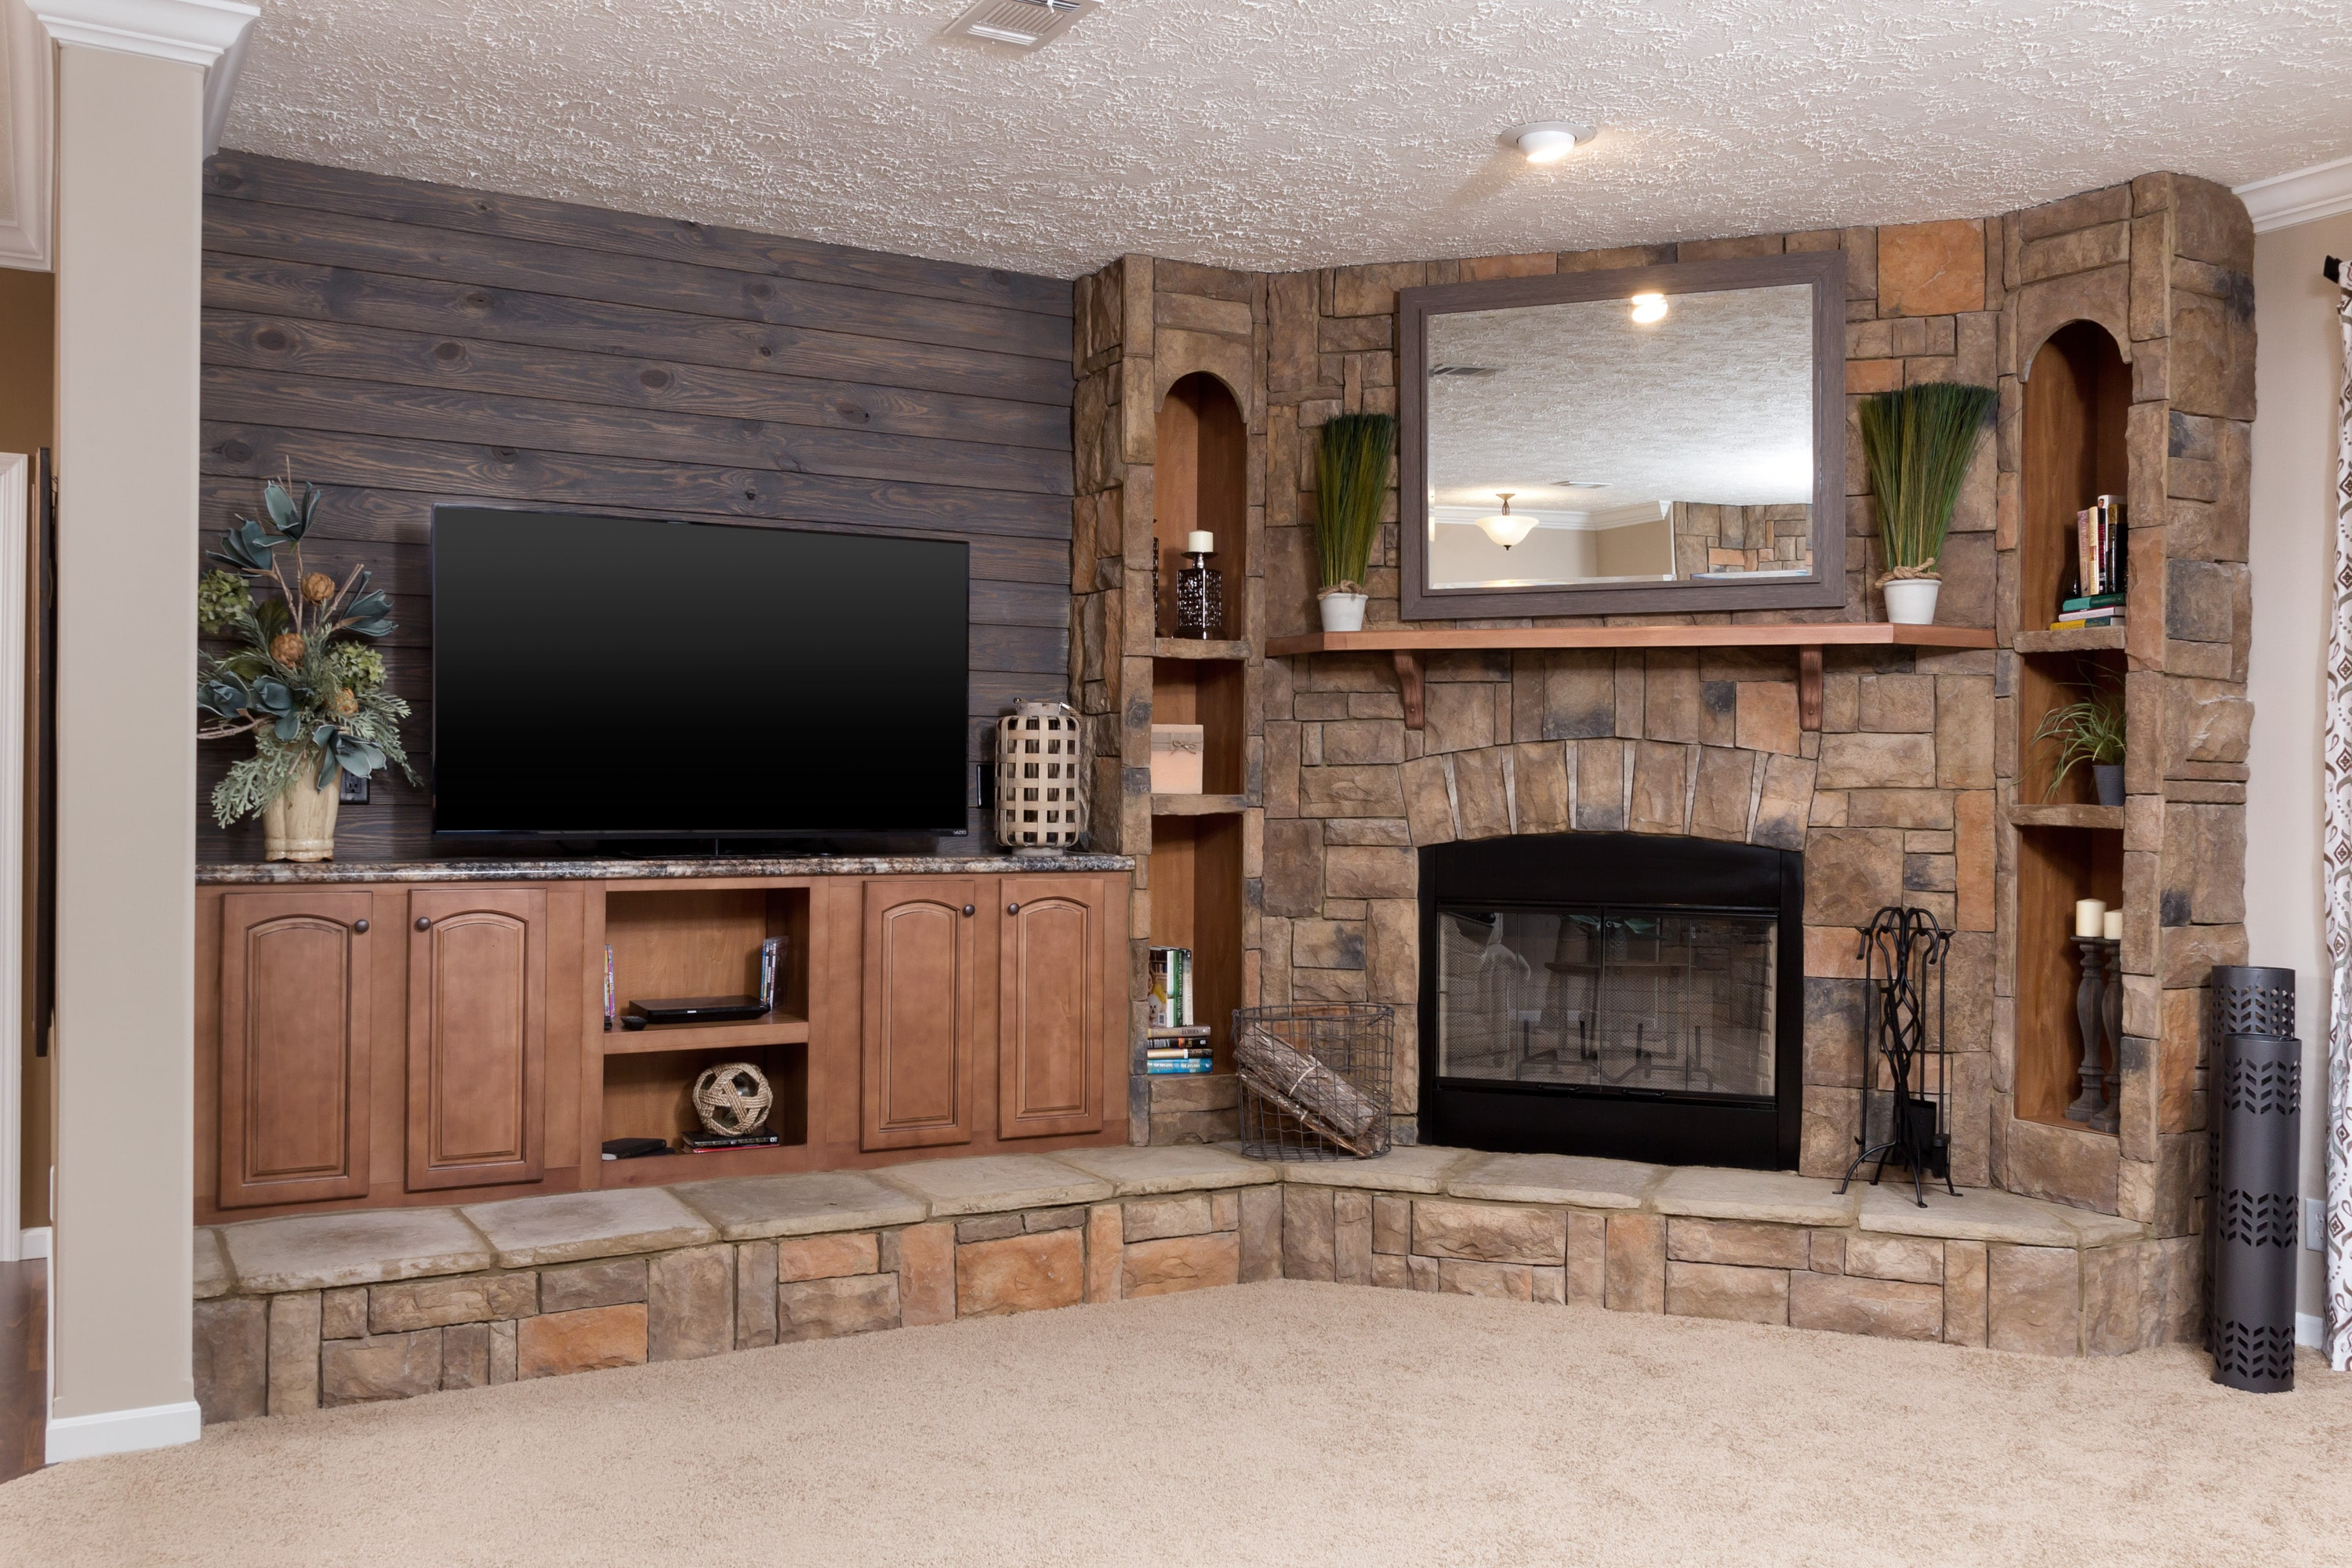 Kabco KB 3237 Ent Ctr Fireplace 0080 1 Hawks Homes